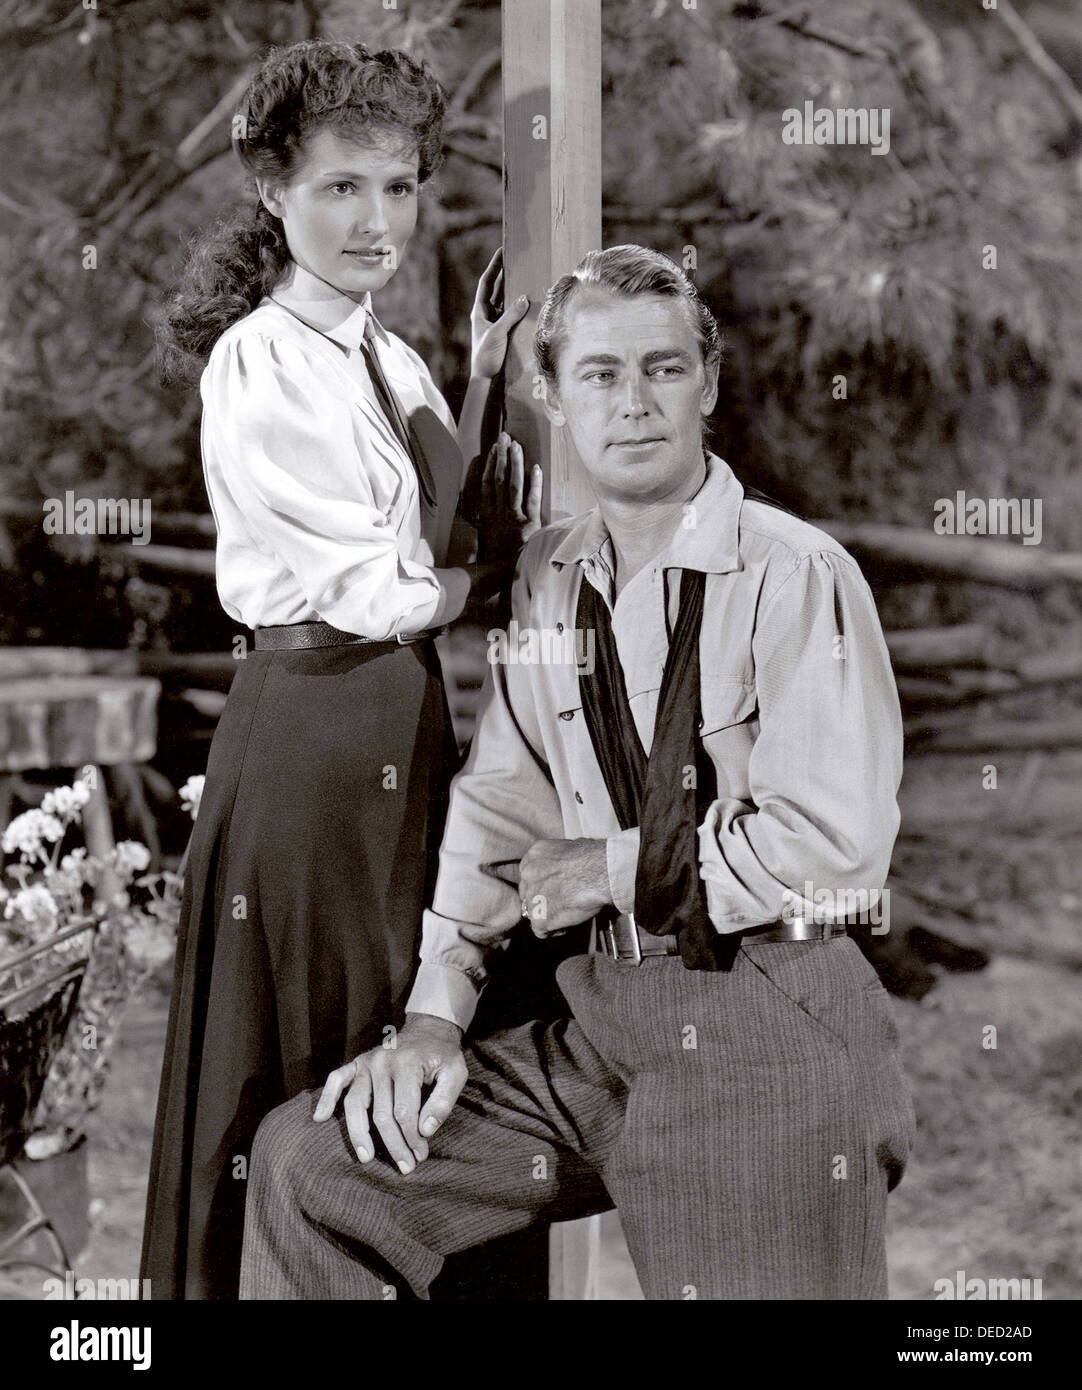 WHISPERING SMITH  1948 Paramount Pictures film with Alan Ladd and Brenda Marshall - Stock Image